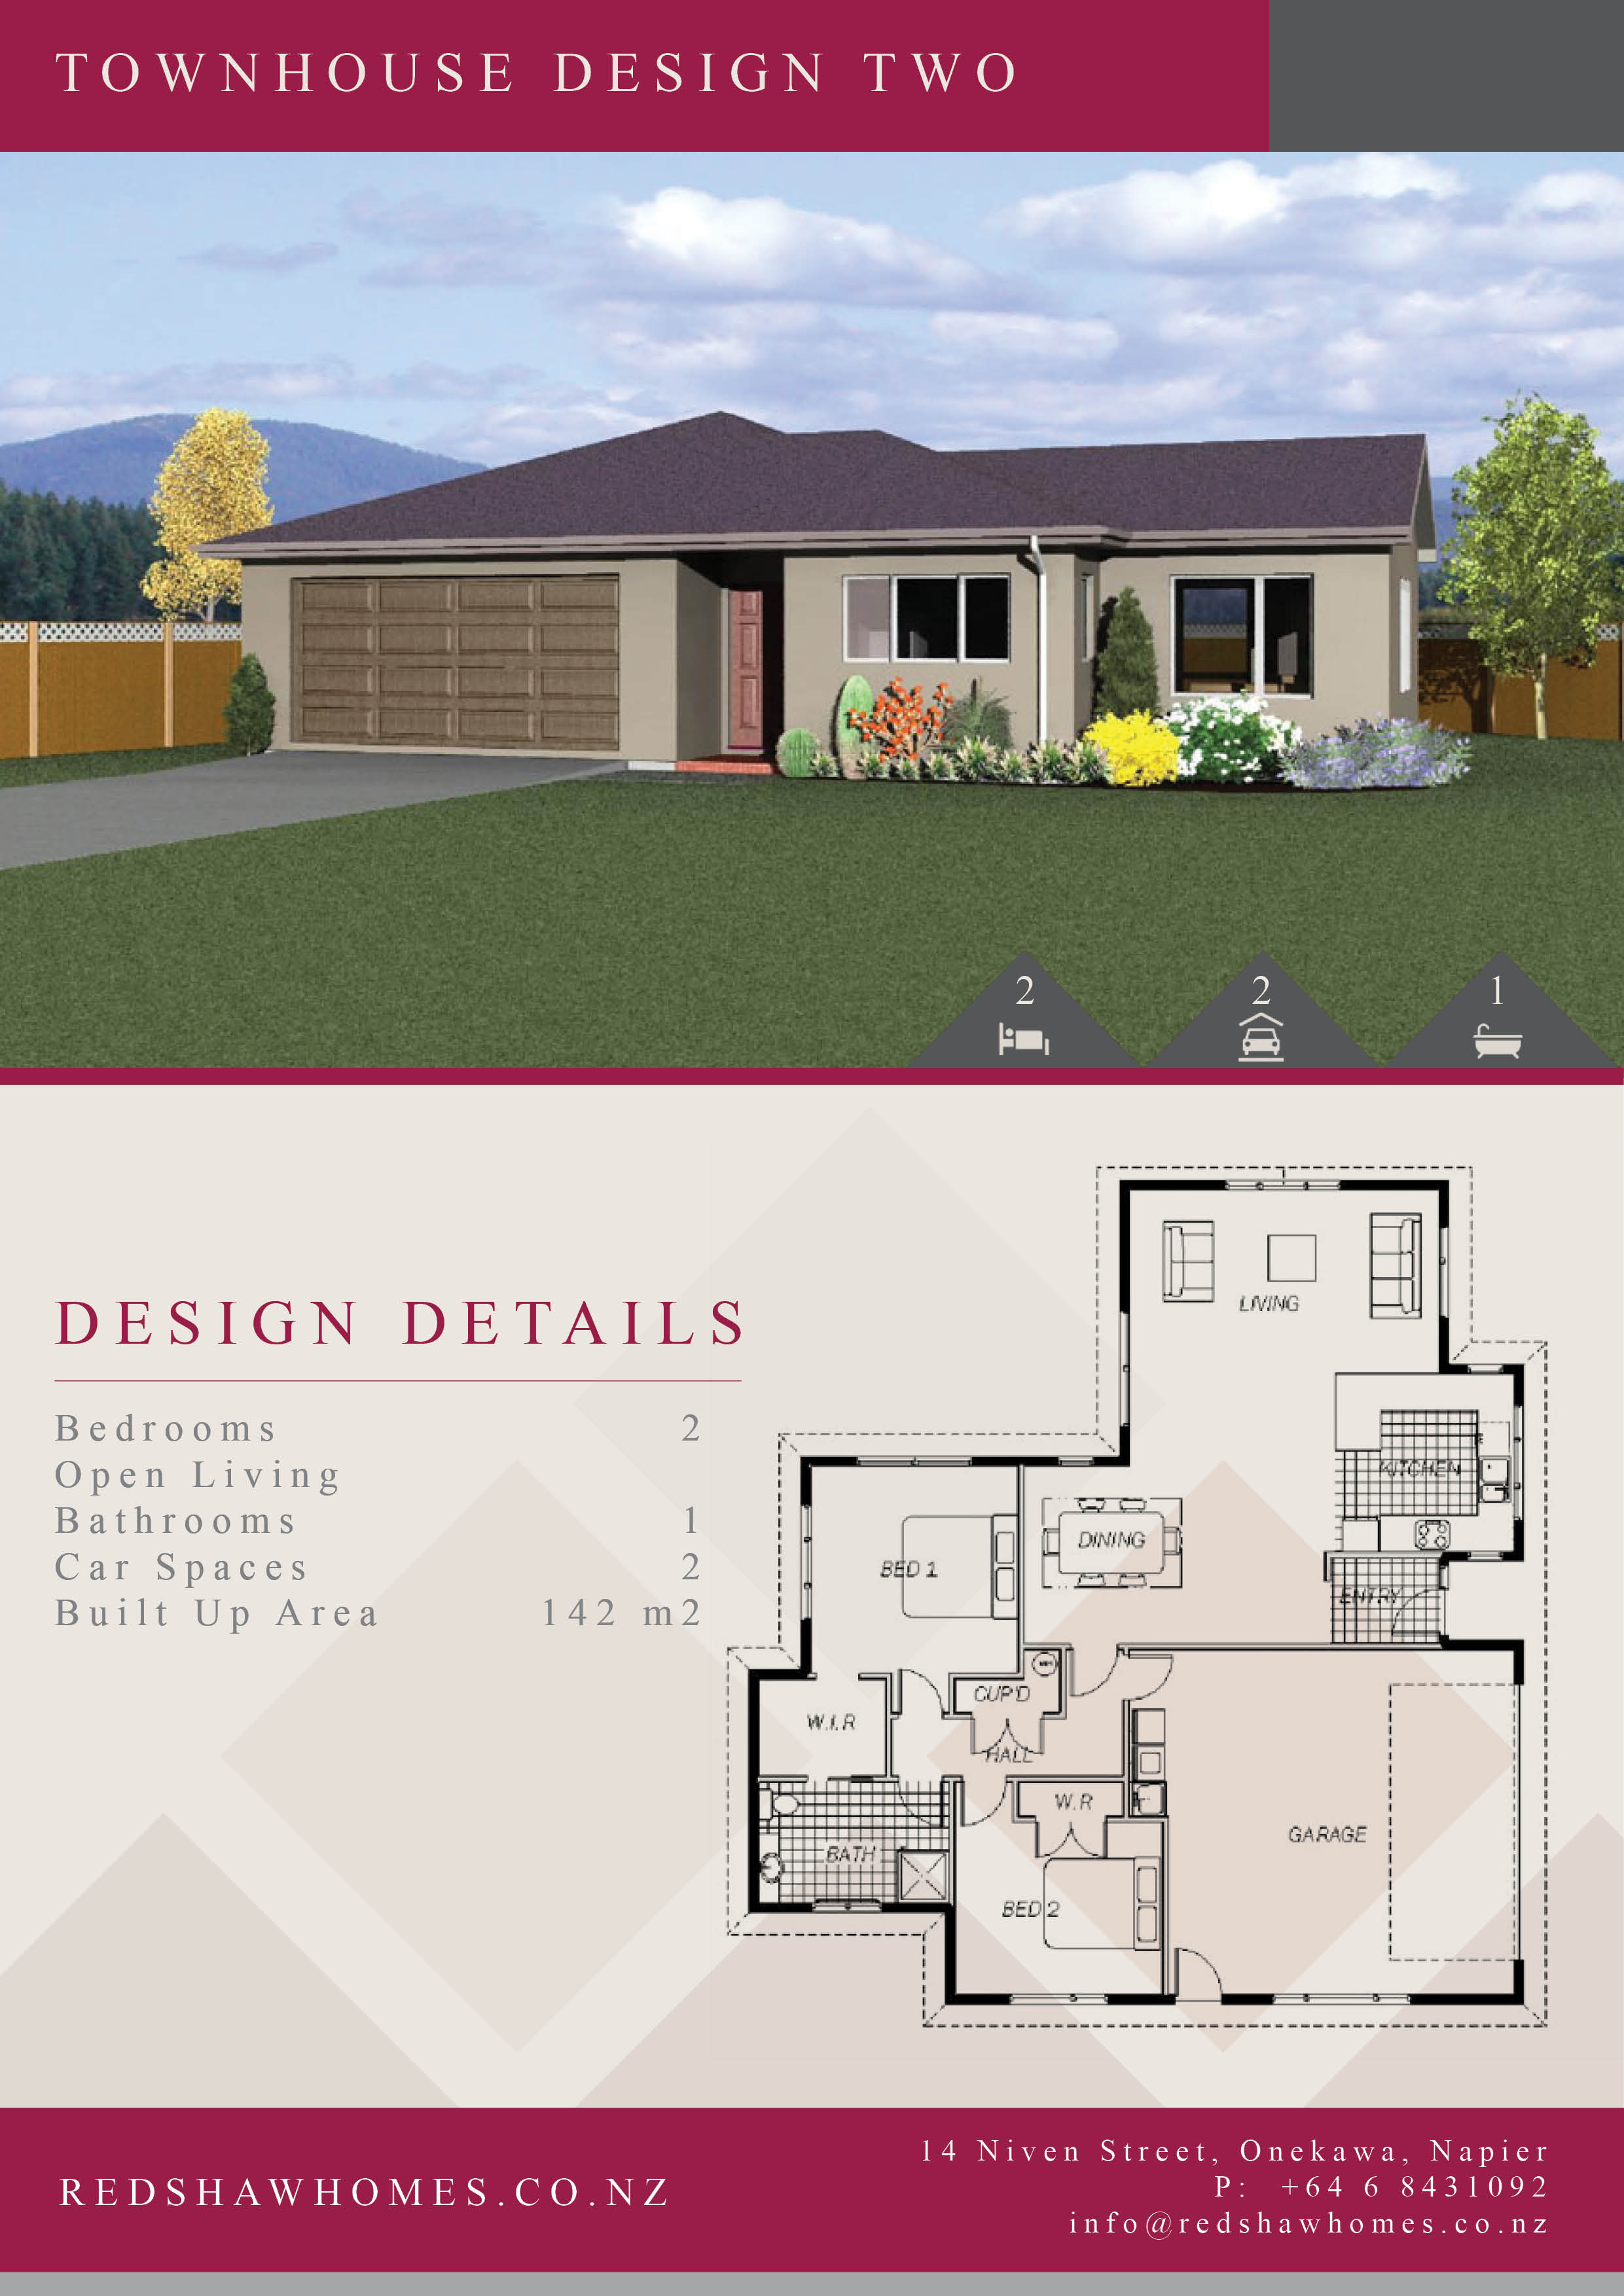 2 Bedroom townhouse Designs Lovely 2 Bedroom Homes for Sale